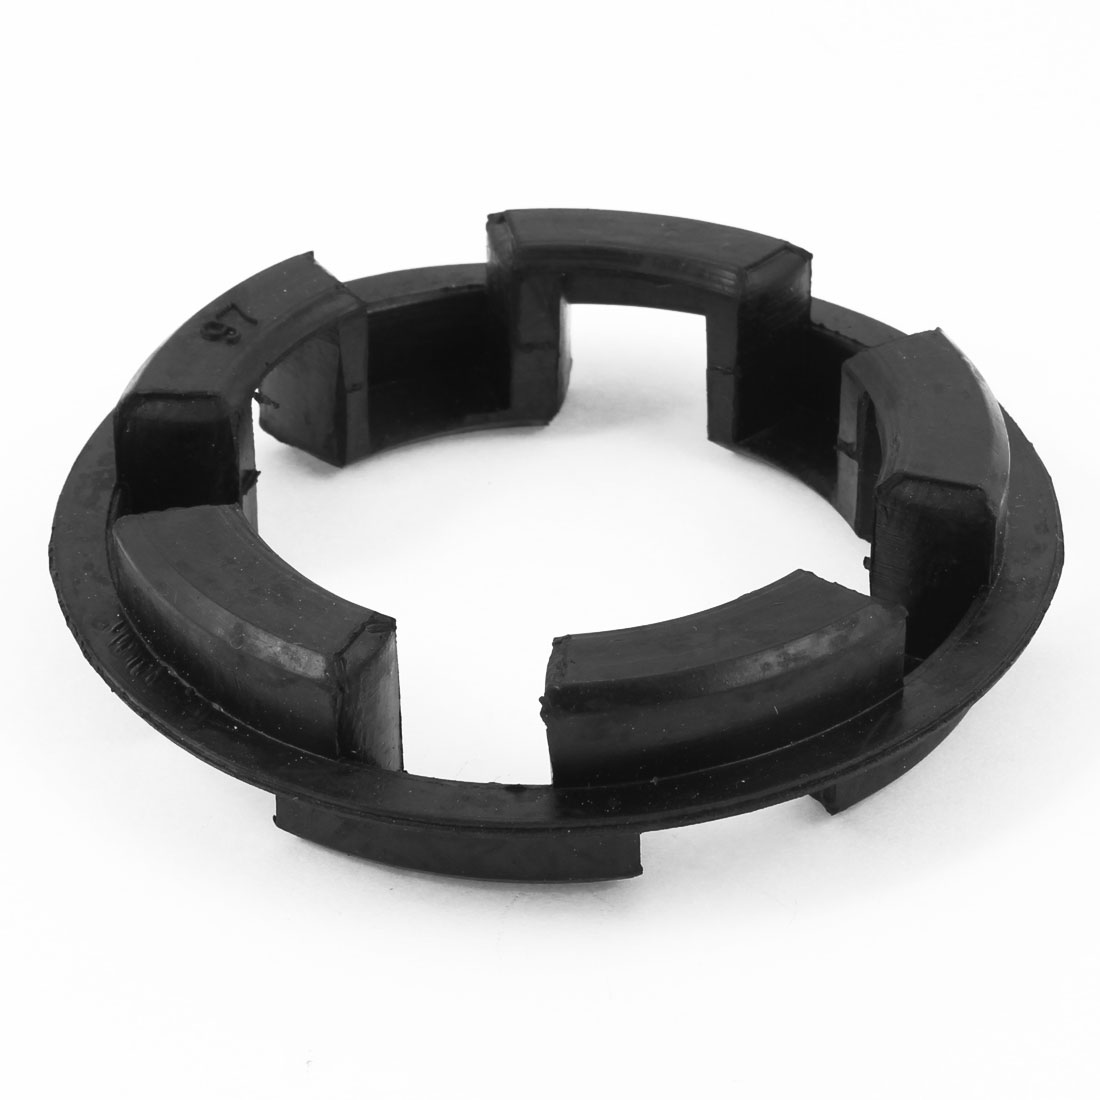 Rubber 97mm x 65mm x 12mm Shaft Coupling Insert Spider Black